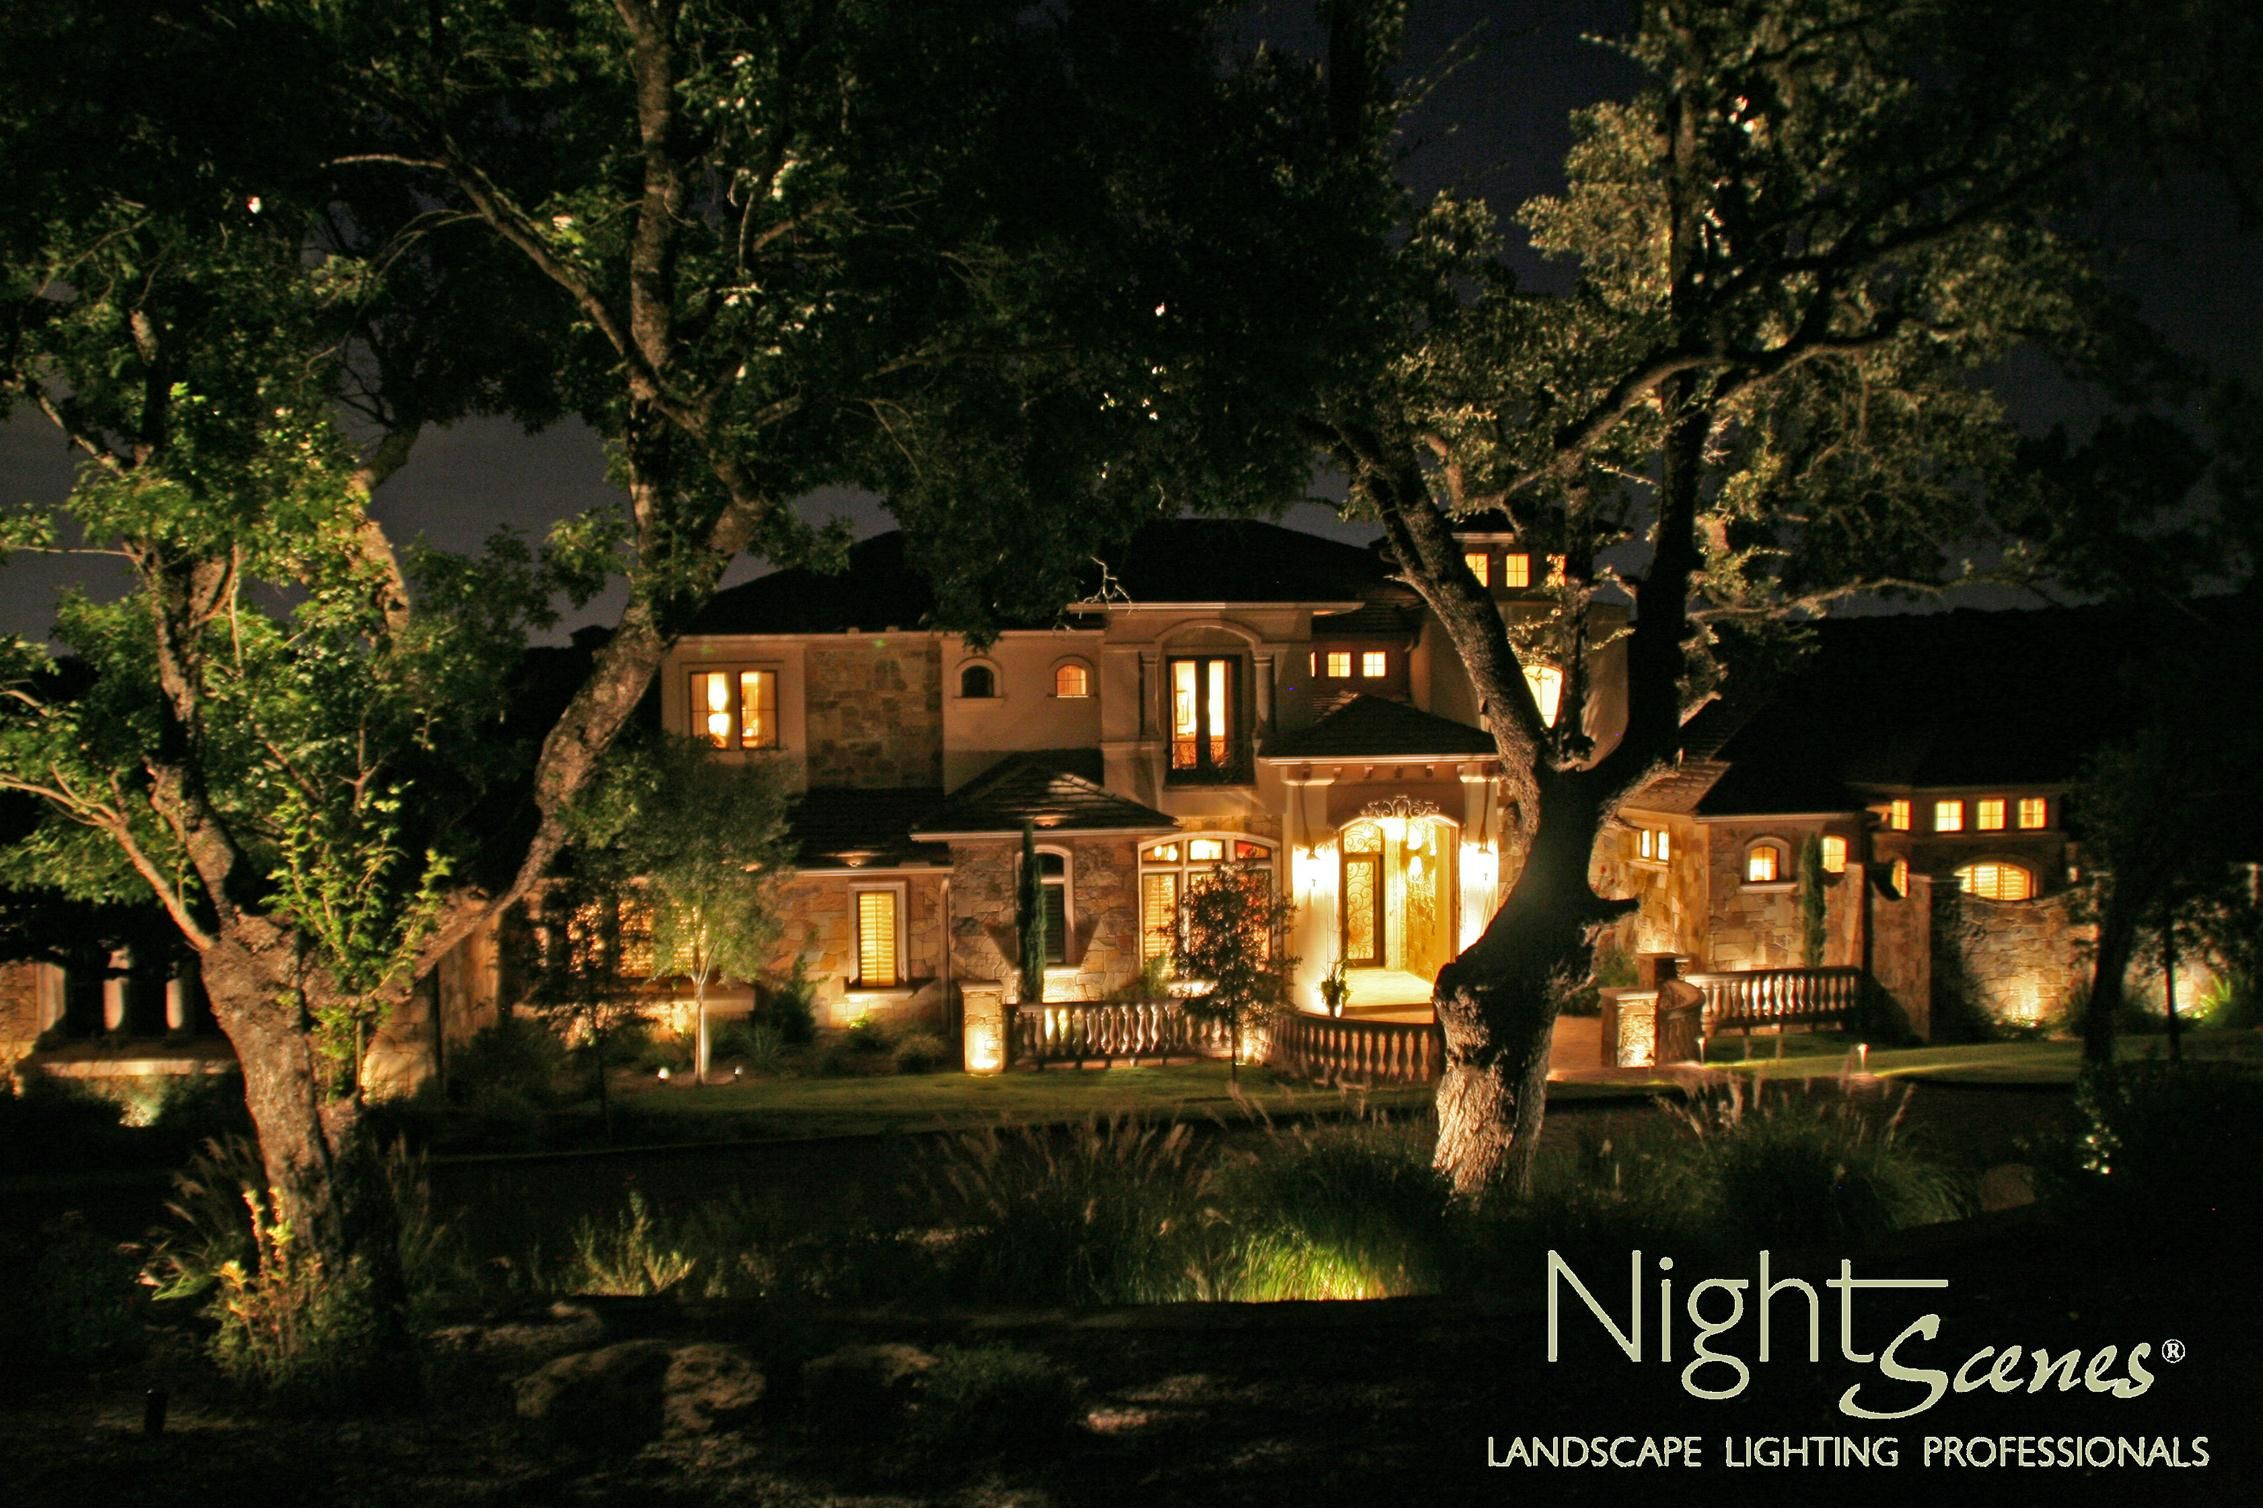 Pin By Nightscenes Landscape Lighting Professionals On